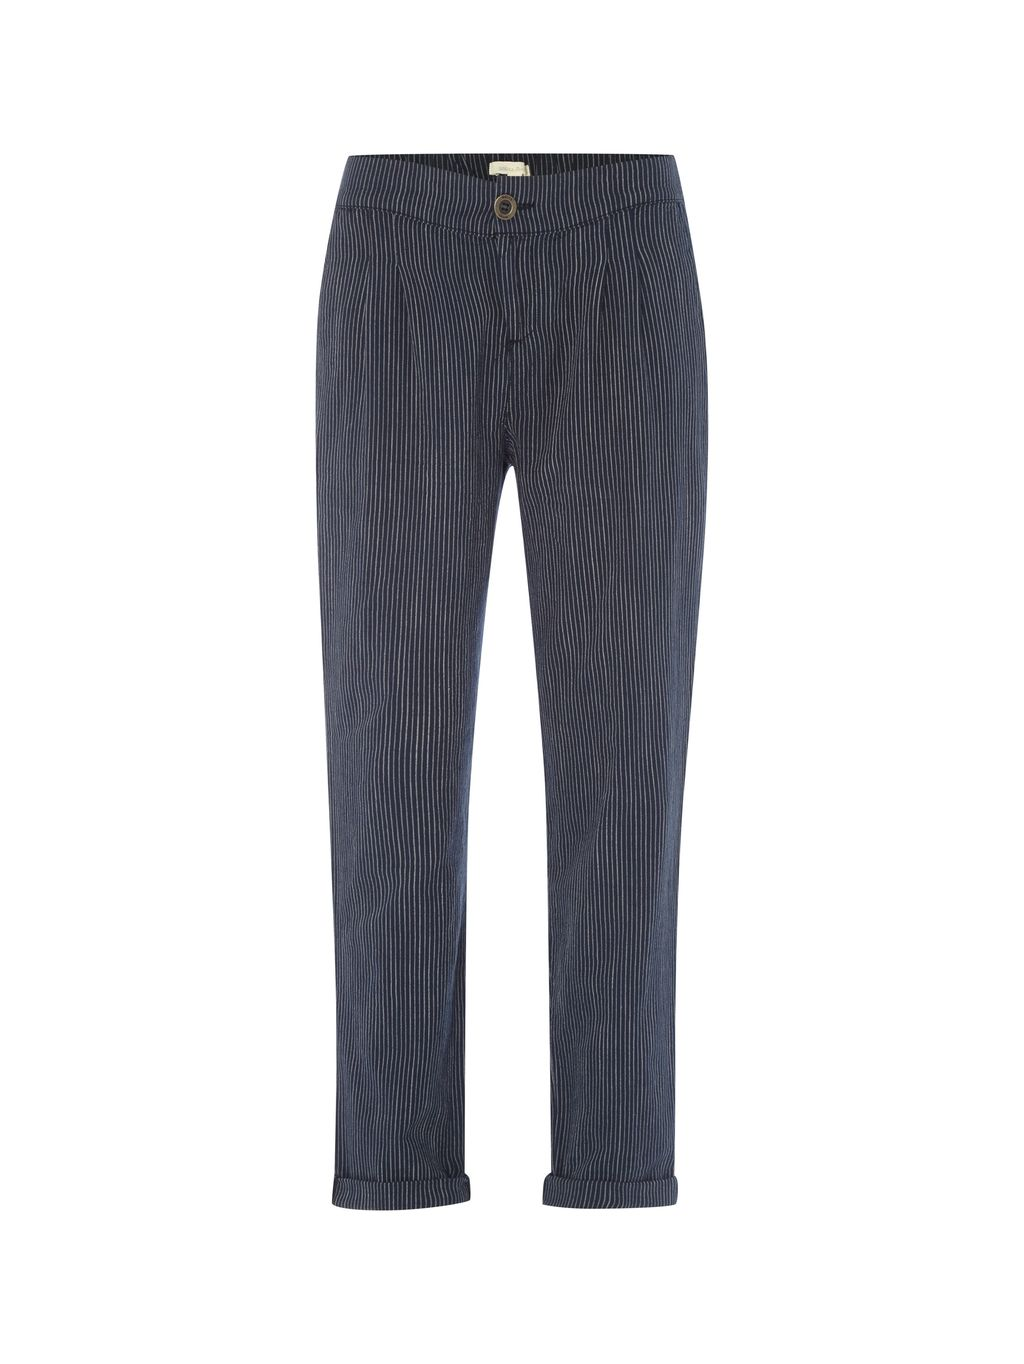 Slouchy Stripe Trouser, Navy - length: standard; pattern: striped; waist: mid/regular rise; predominant colour: navy; occasions: casual, creative work; fibres: cotton - 100%; fit: straight leg; pattern type: fabric; texture group: other - light to midweight; style: standard; pattern size: standard (bottom); season: s/s 2016; wardrobe: highlight